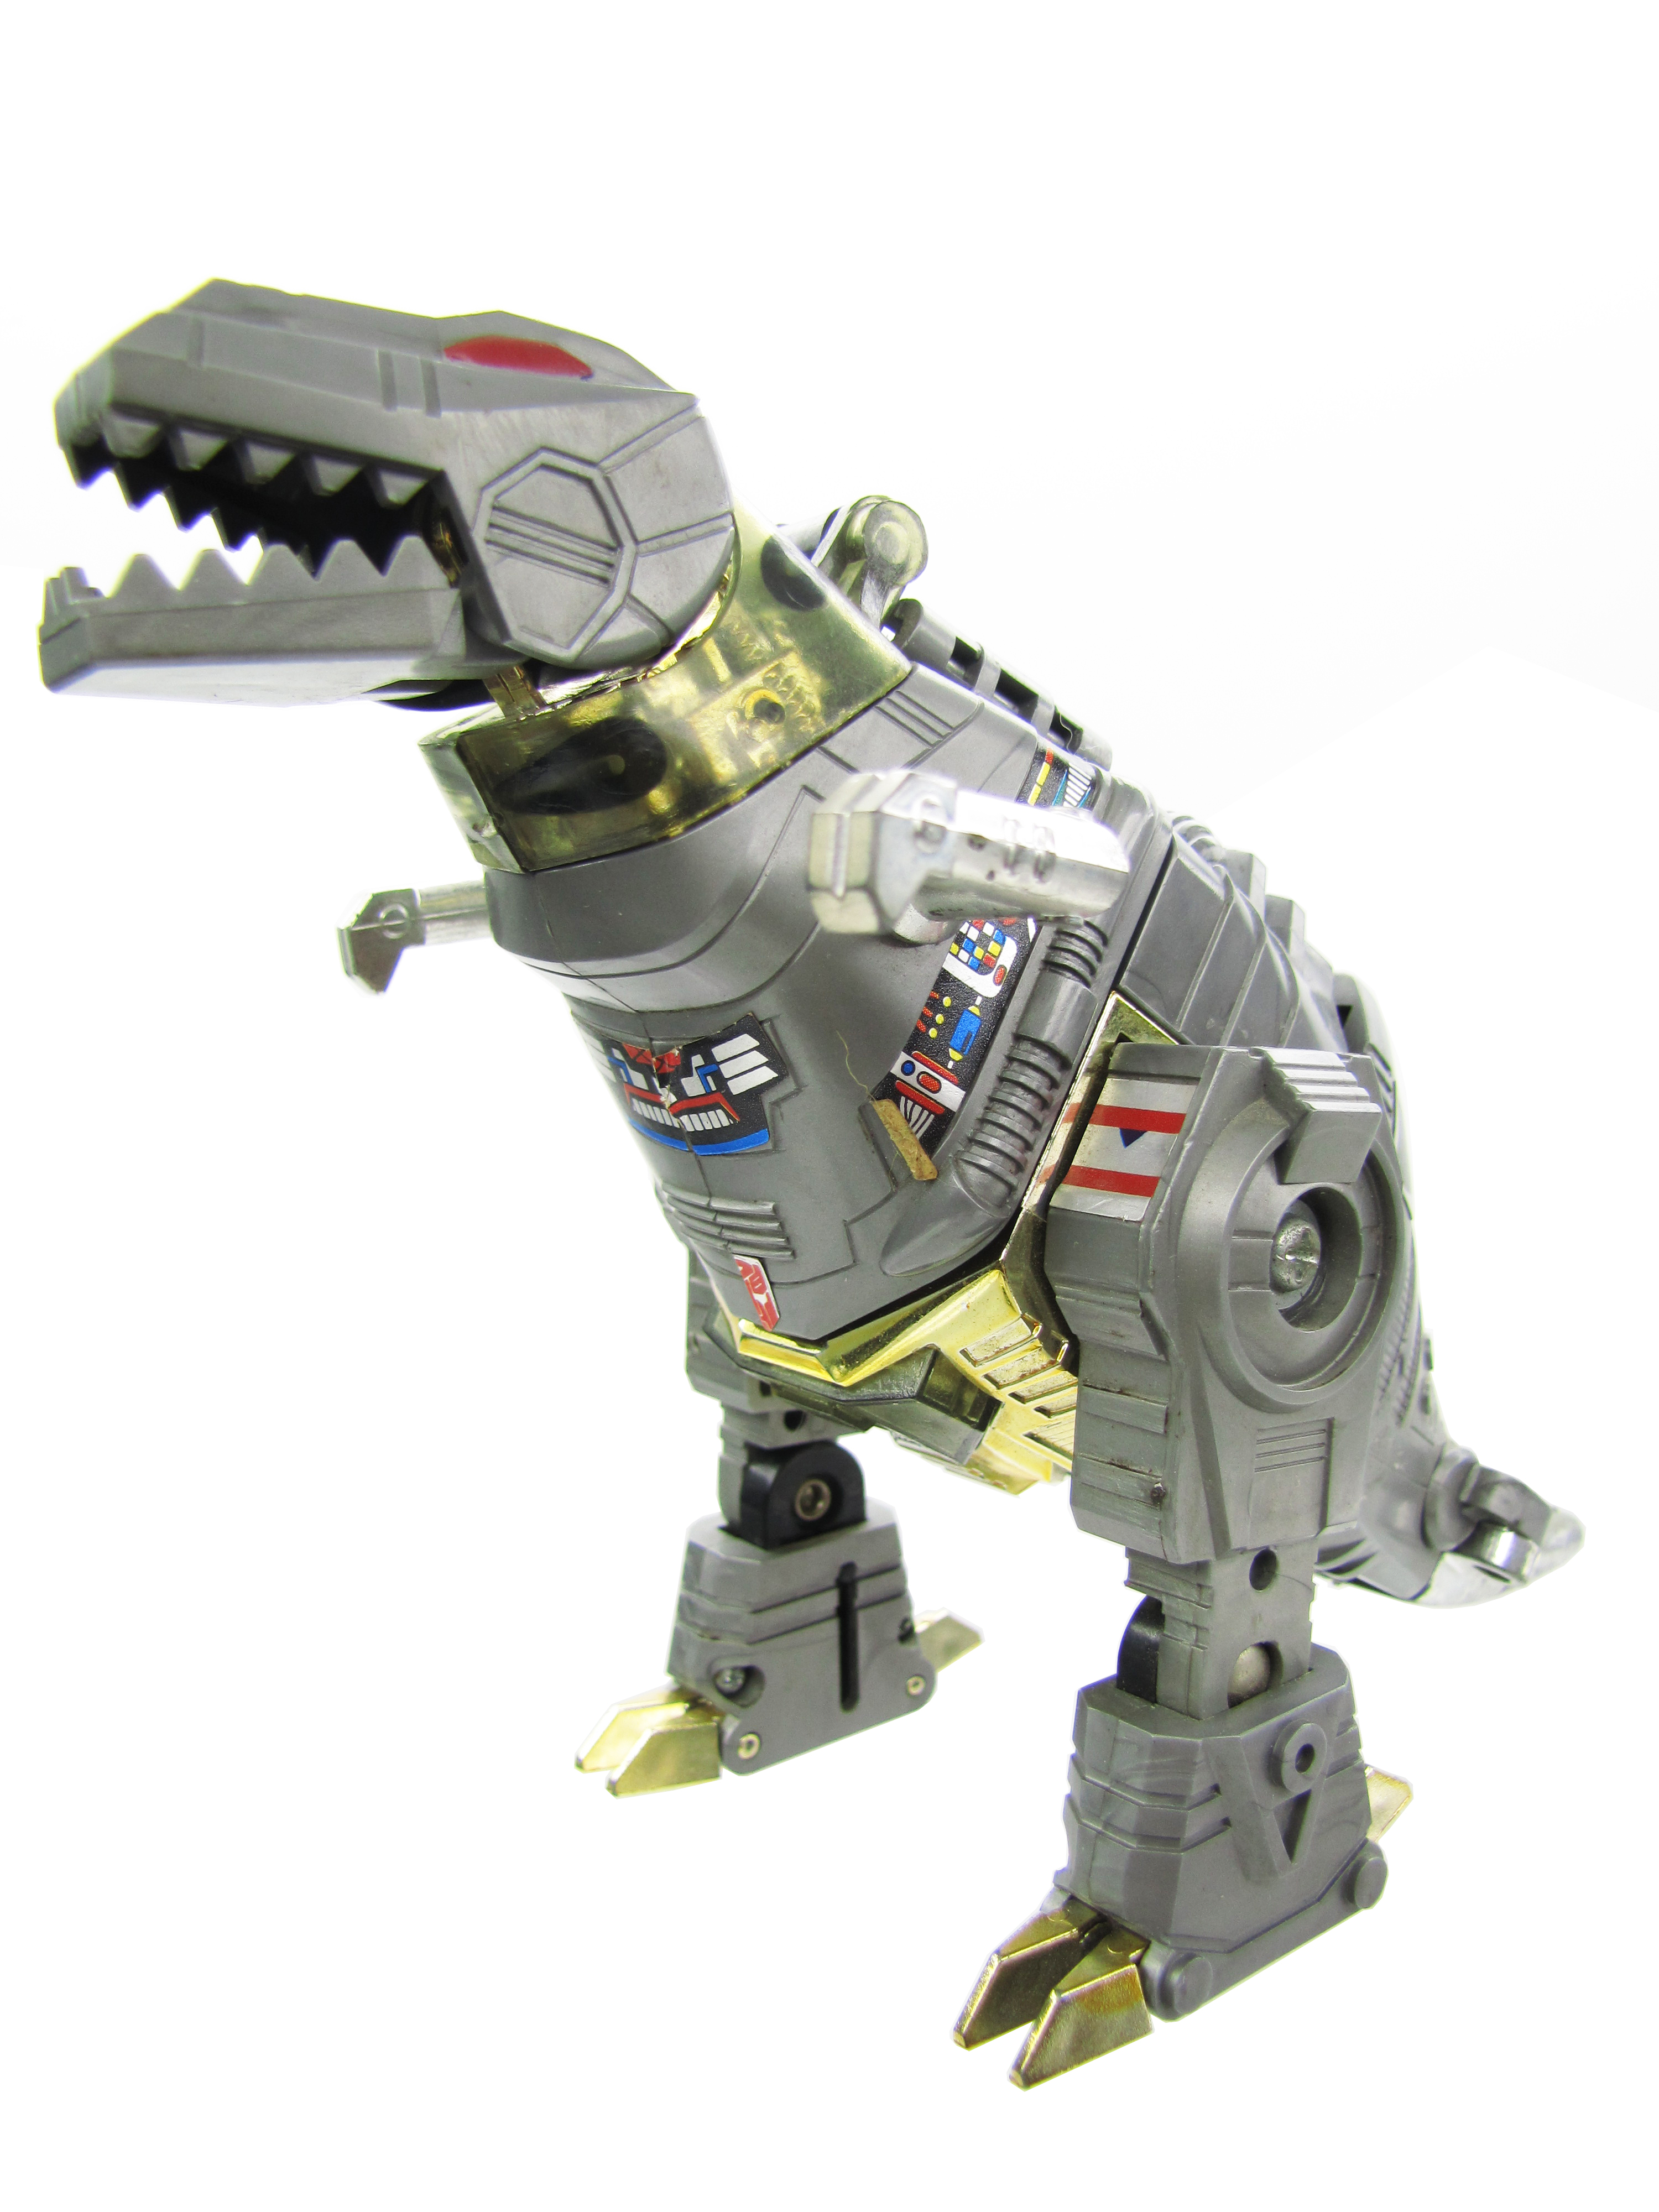 1984 Transformers Generation 1 Dinobots Leader GRIMLOCK Great Condition